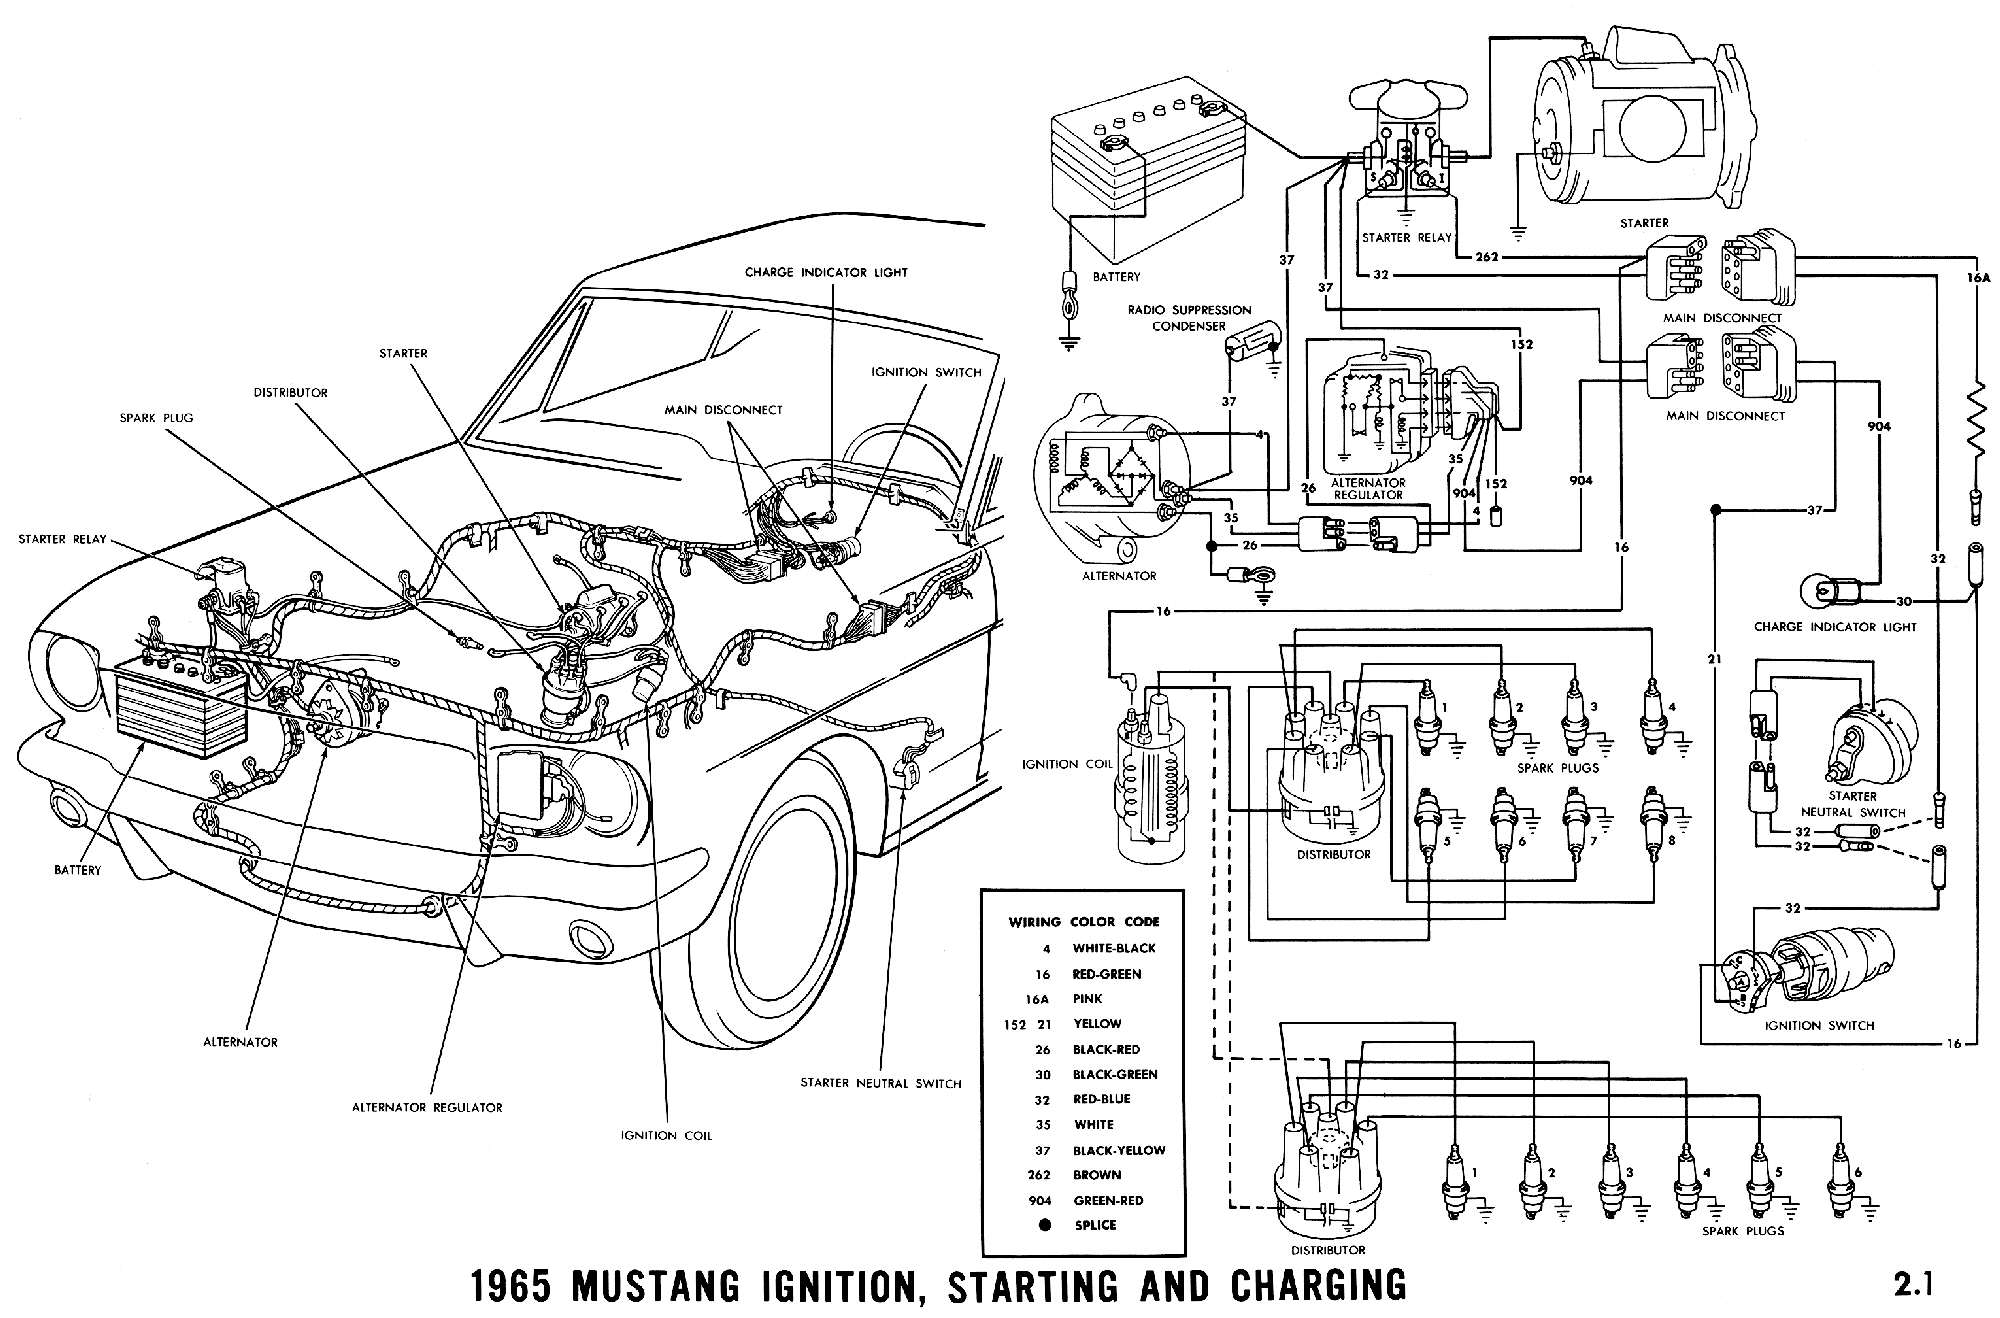 1965c 1965 mustang wiring diagrams average joe restoration 1965 mustang wiring harness diagram at fashall.co